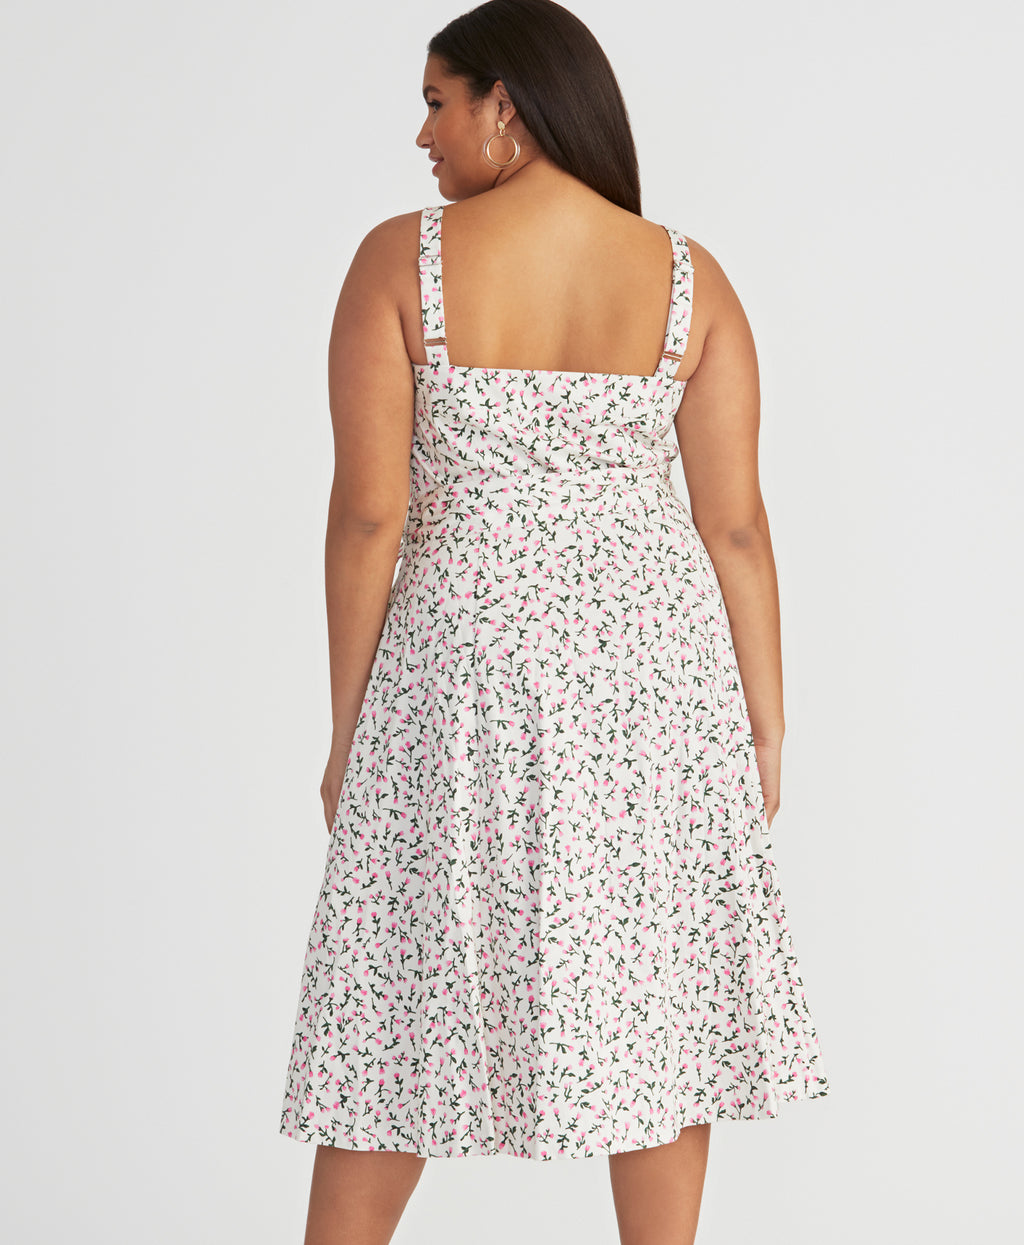 Clara Dress | Floral Ivory